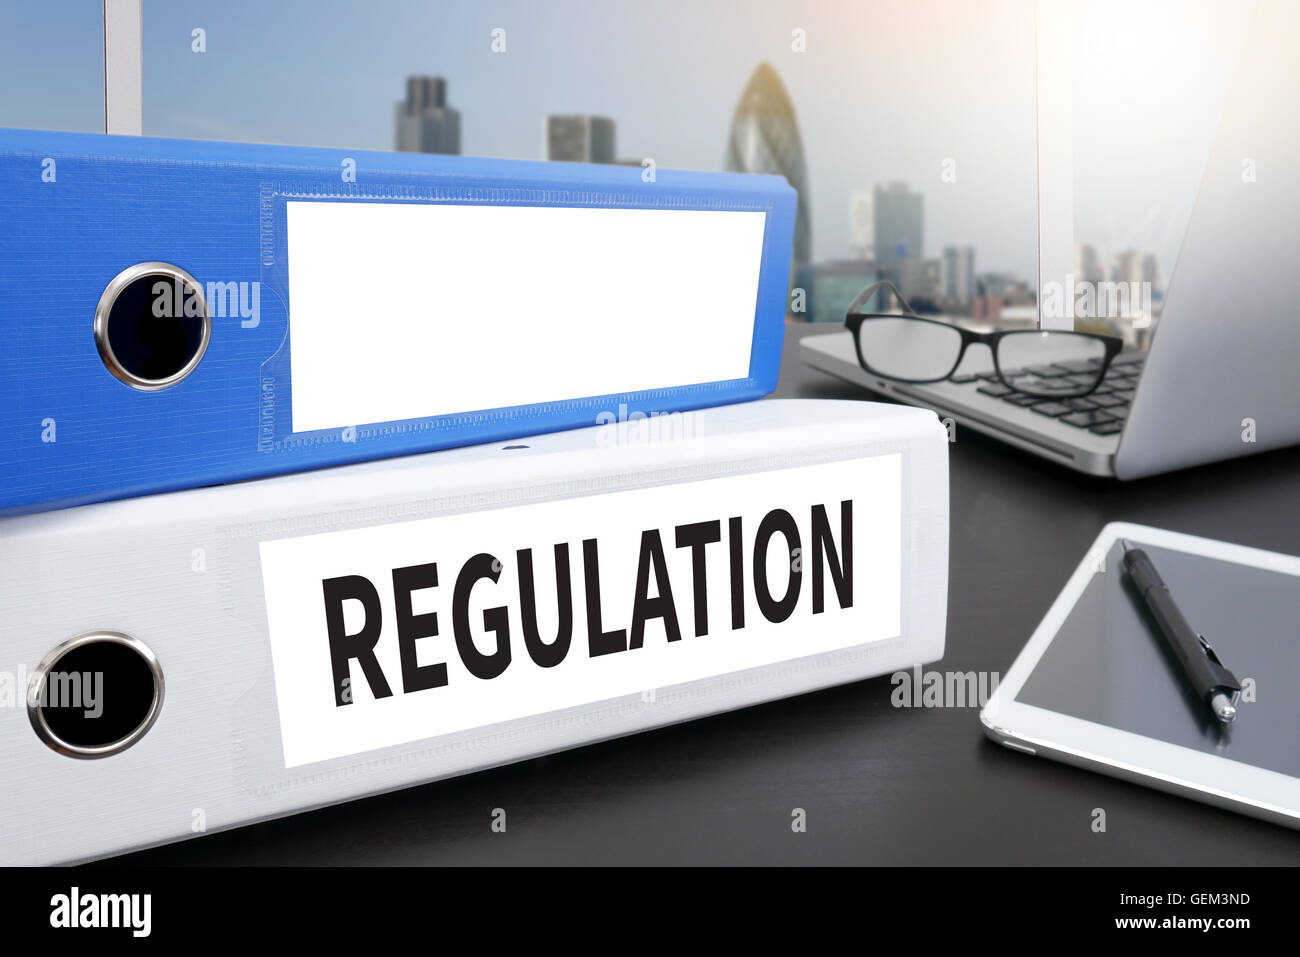 REGULATION Office folder on Desktop on table with Office Supplies. - Stock Image